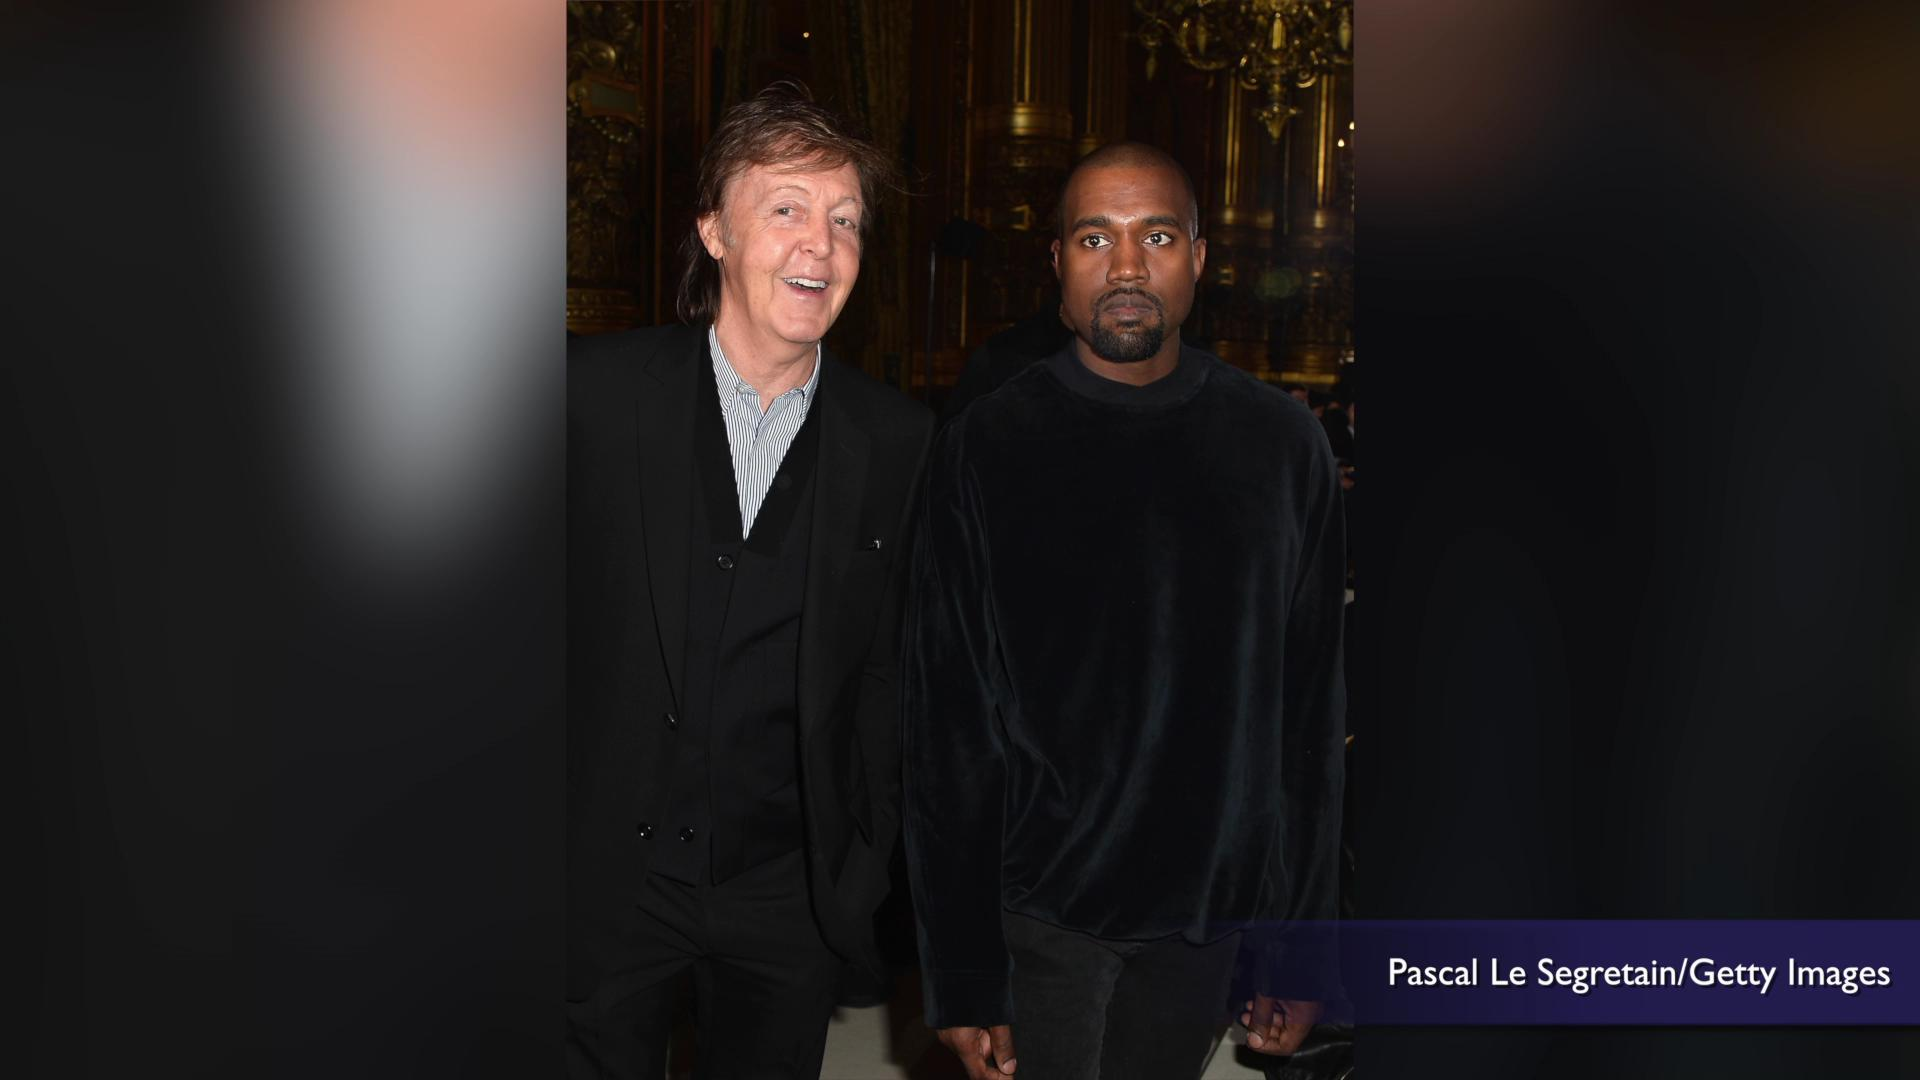 Paul McCartney says writing with Kanye West was like working with John Lennon